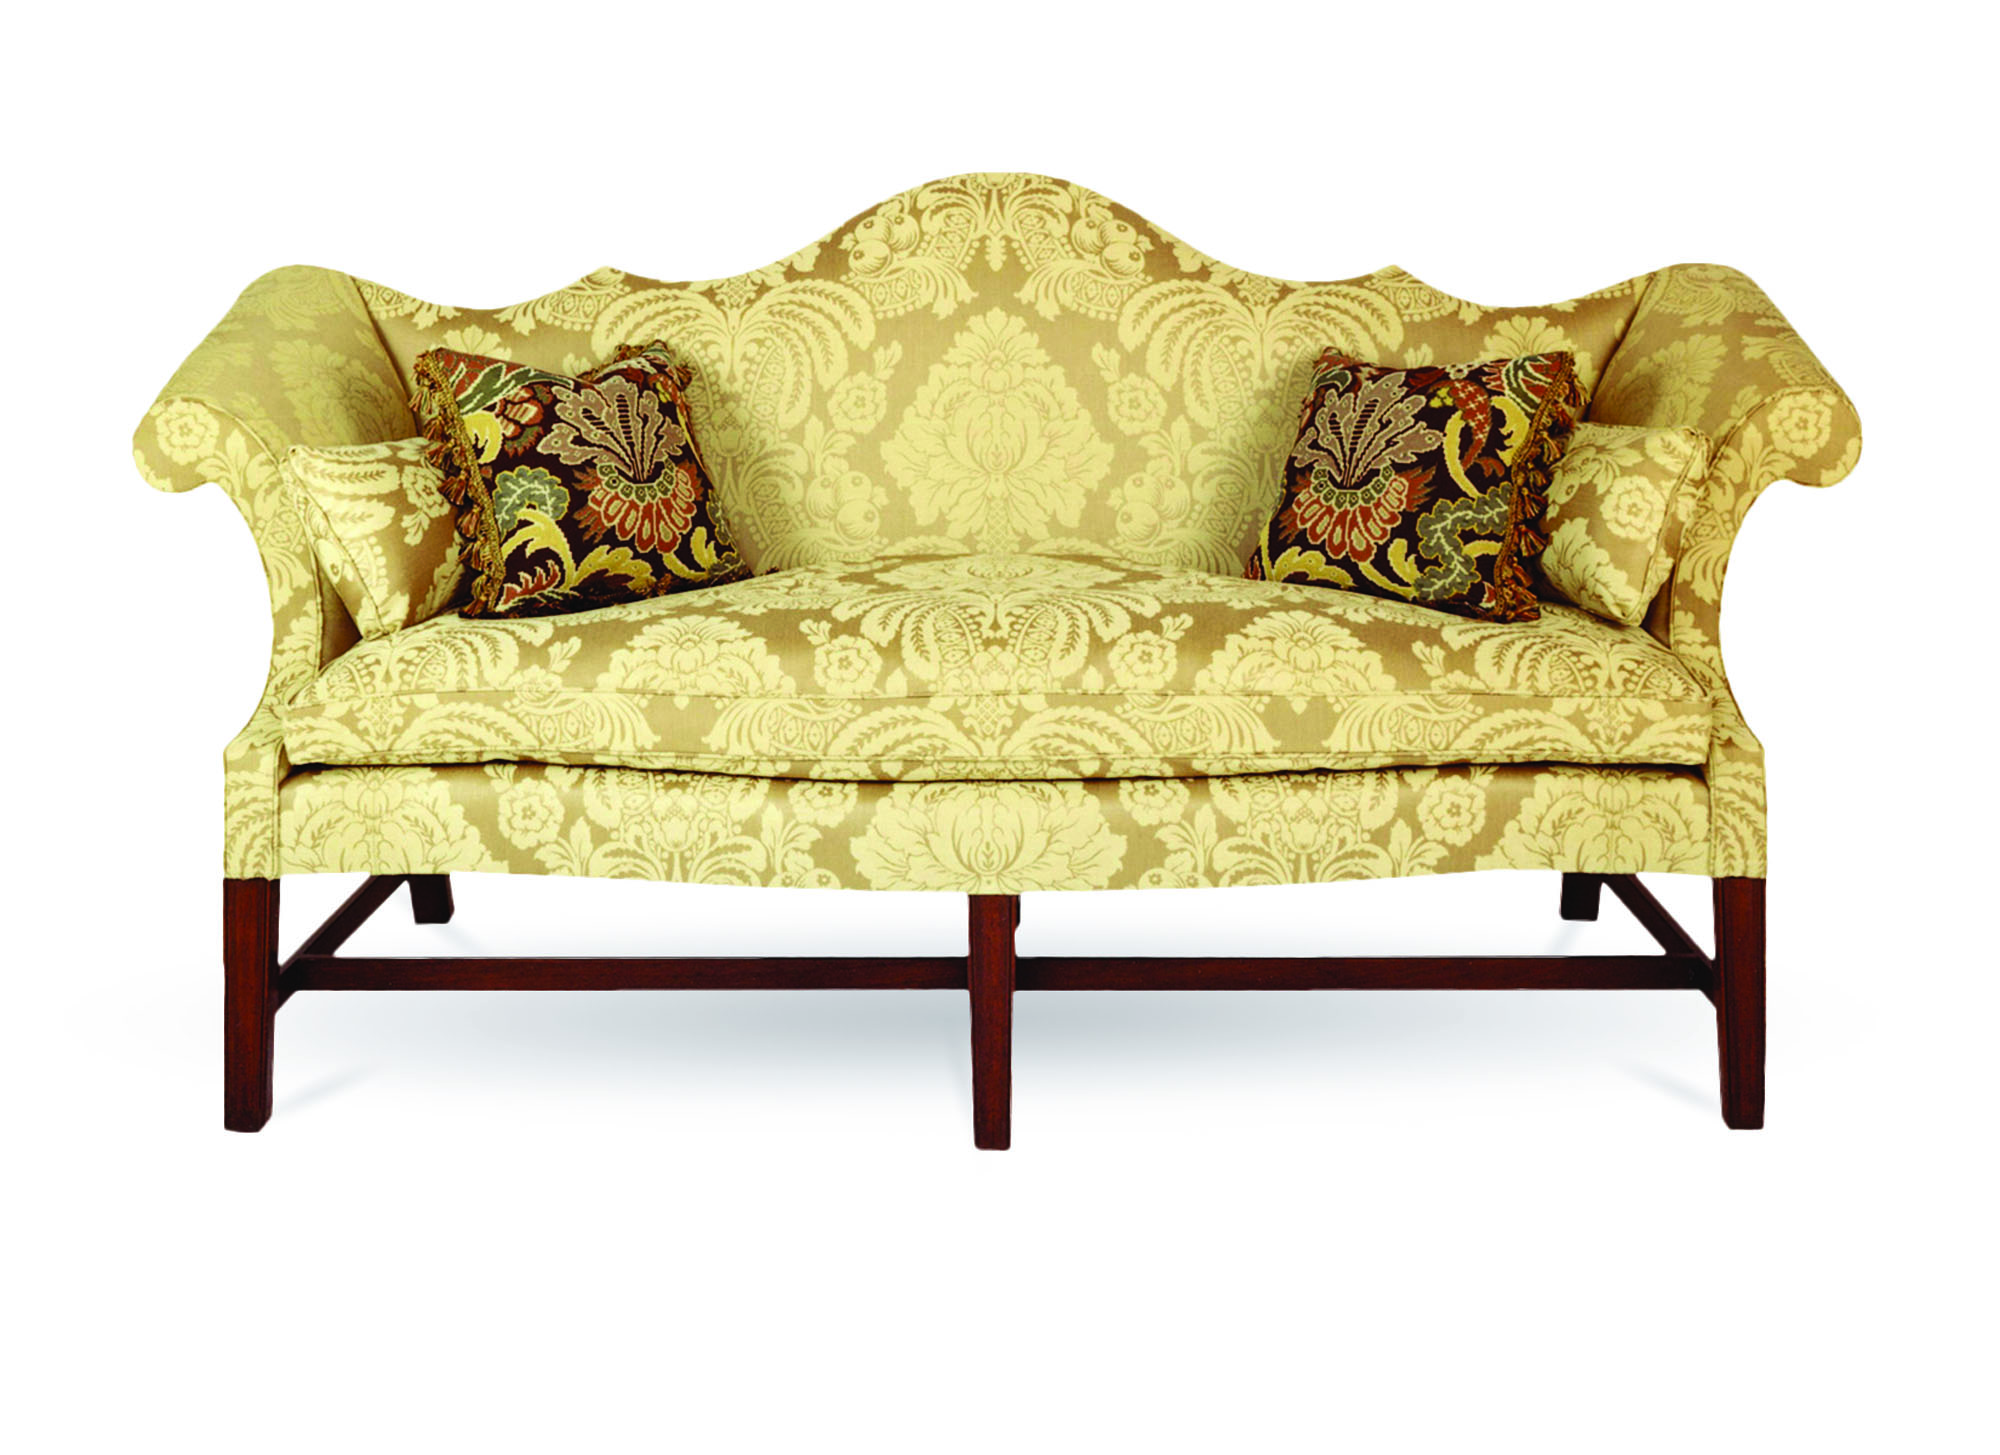 sitting pretty sofas chesterfield sofa nyc reproduction le corbusier style lc3 grand confort